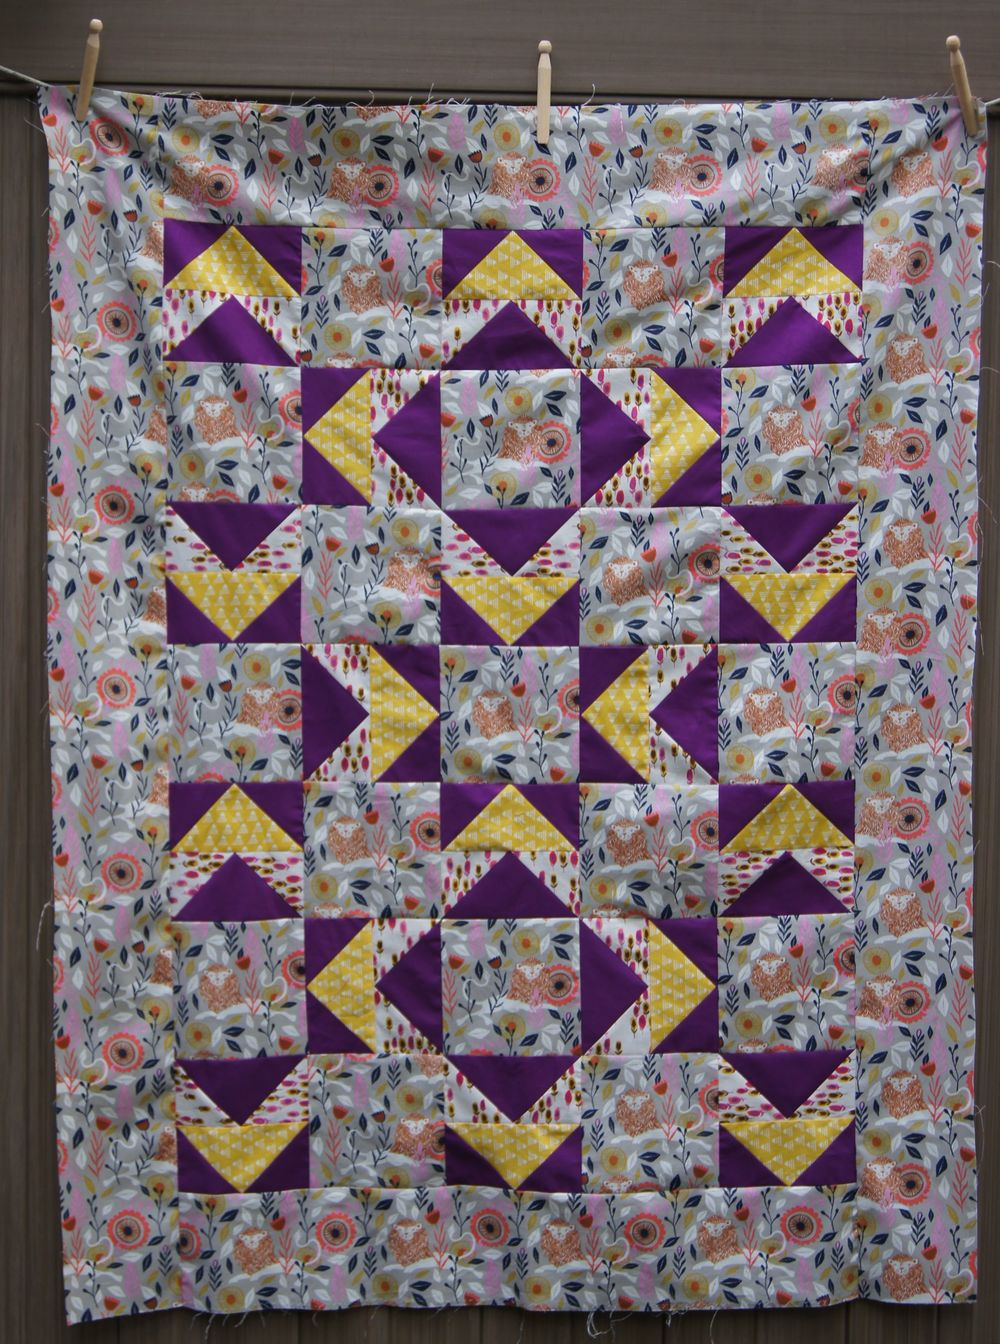 Quilt Modern Flying Geese Top Lion C + S 9-14.jpg